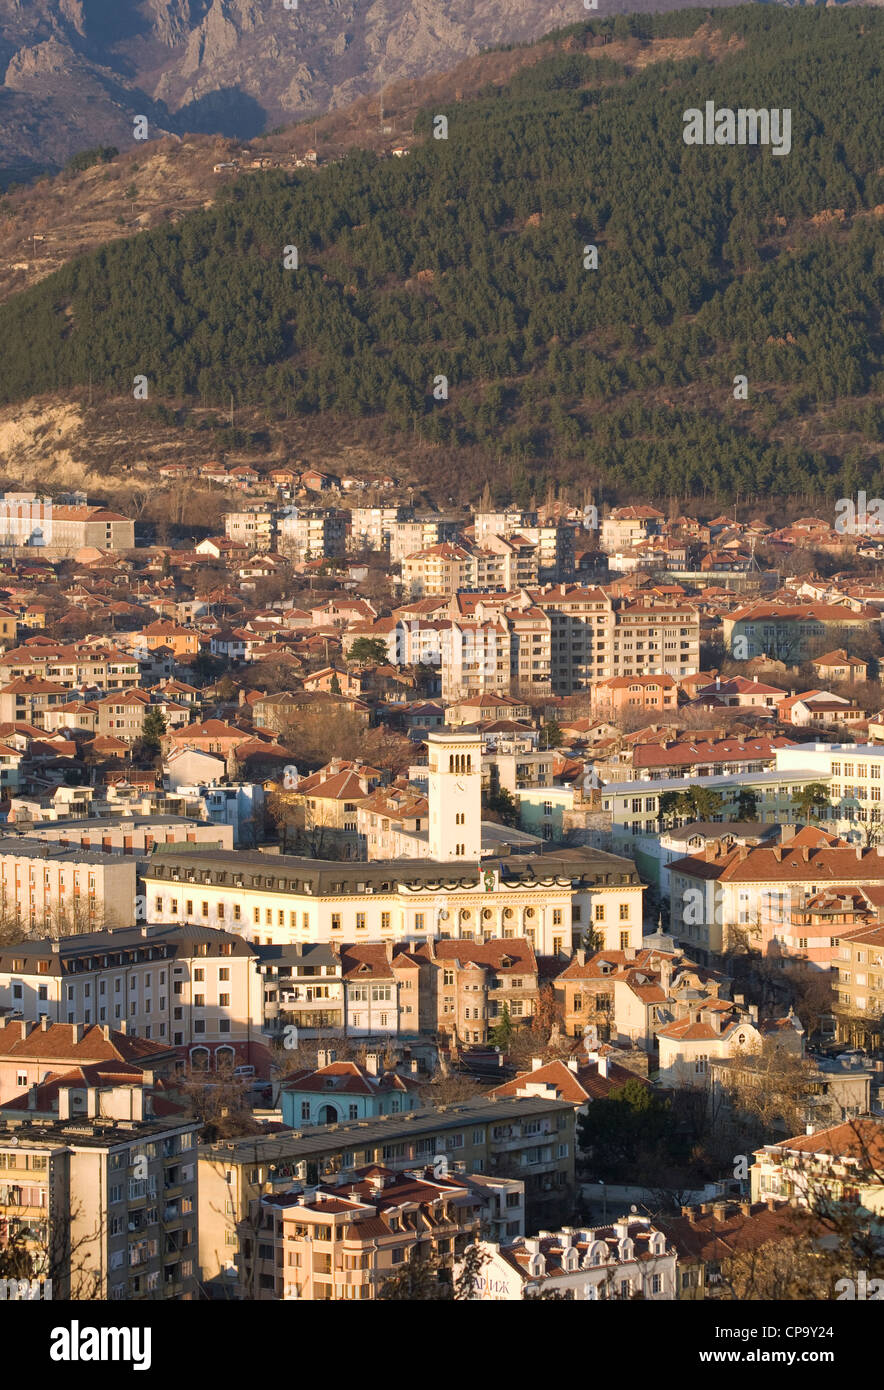 Aerial view of Sliven municipality, Bulgaria at Summertime. - Stock Image